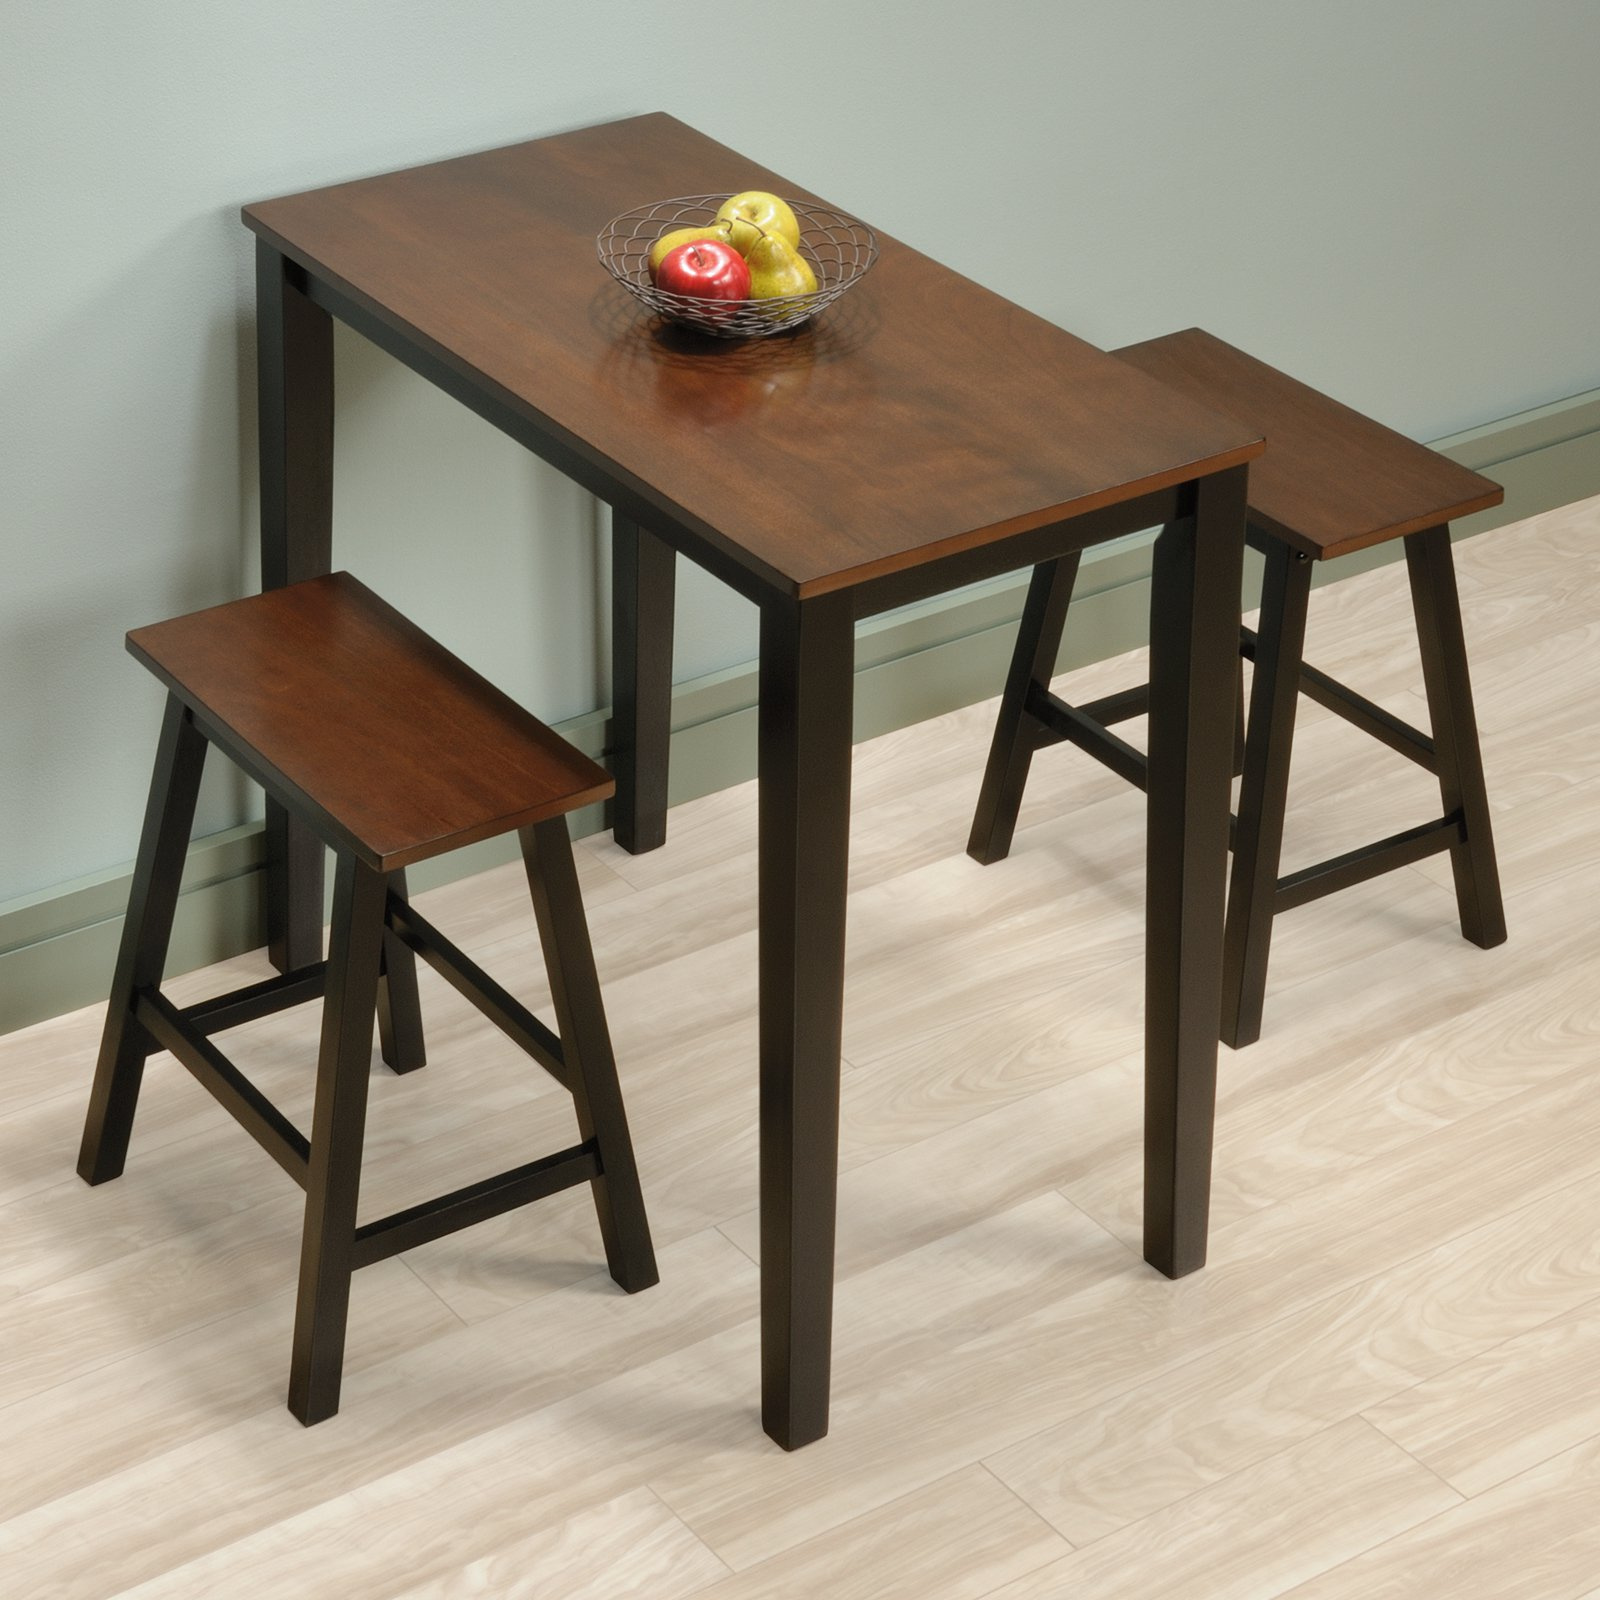 Pleasing Sauder Beginnings 3 Piece Counter Height Dining Set Cherry Finish Beutiful Home Inspiration Truamahrainfo